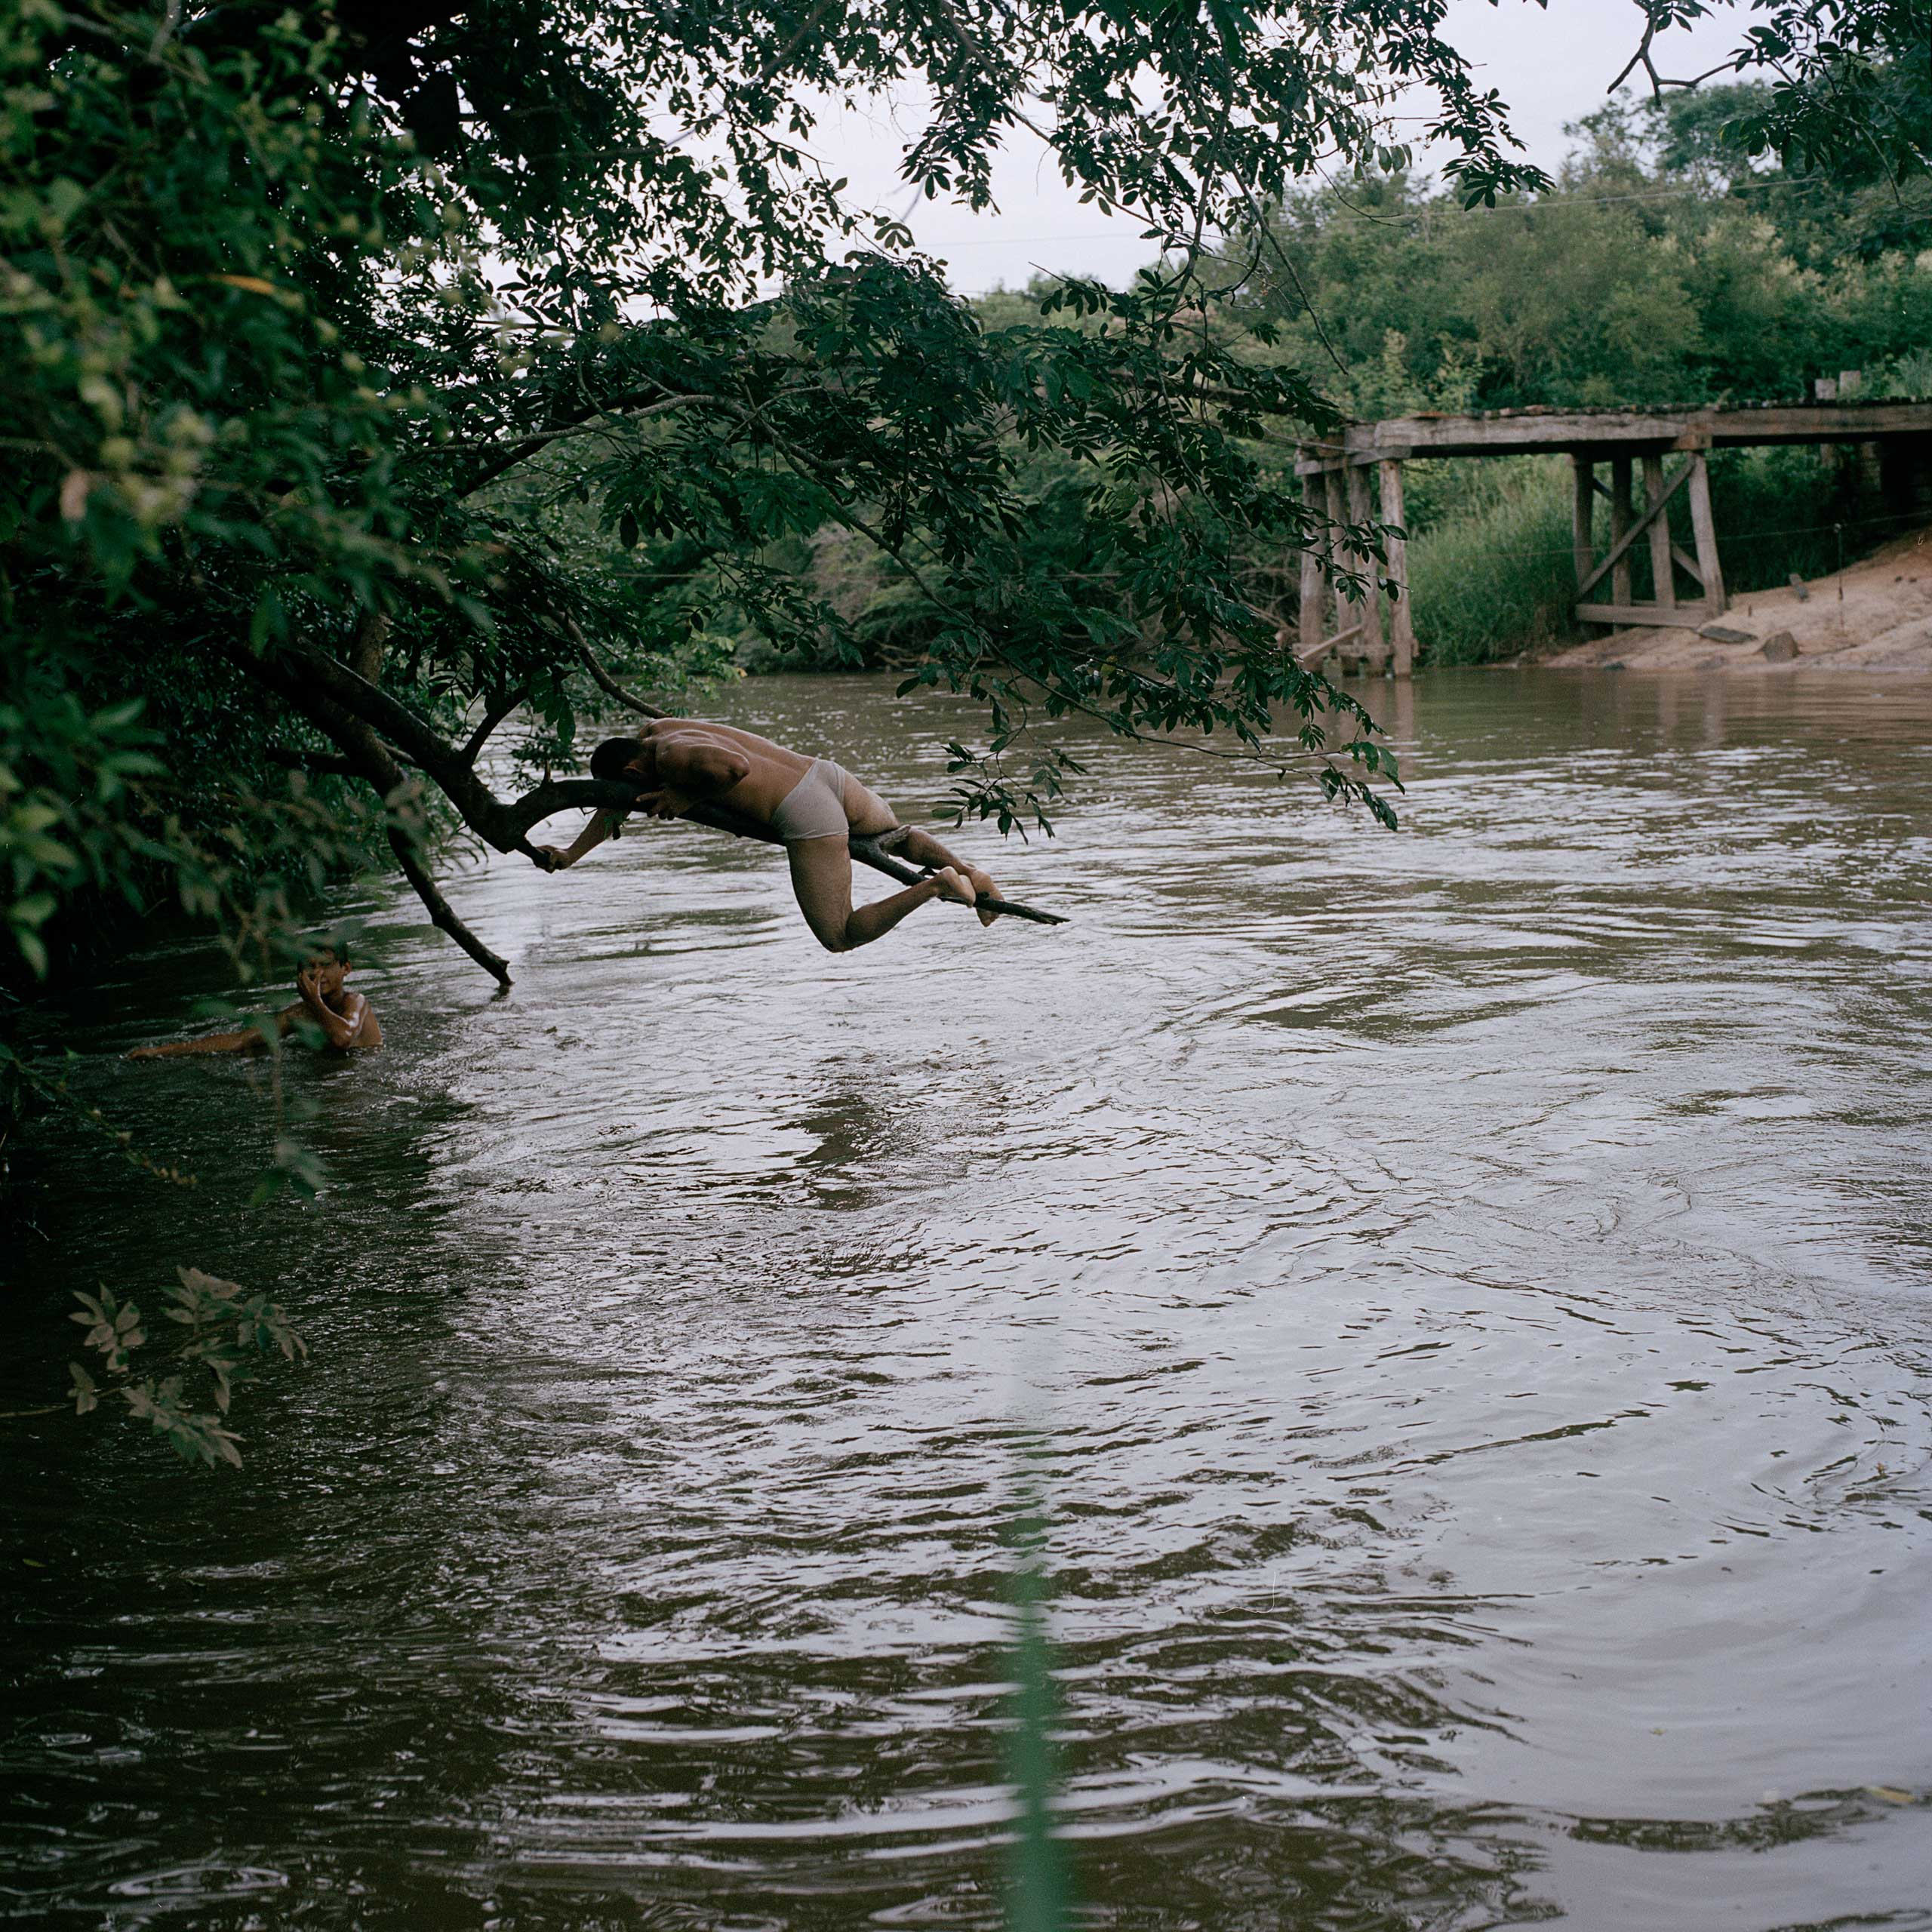 A group of teenagers swim in the river near the Tava Jopoy settlement. Although locals claim it's severely polluted, and few fishes remain, they still enjoy their time by the river.